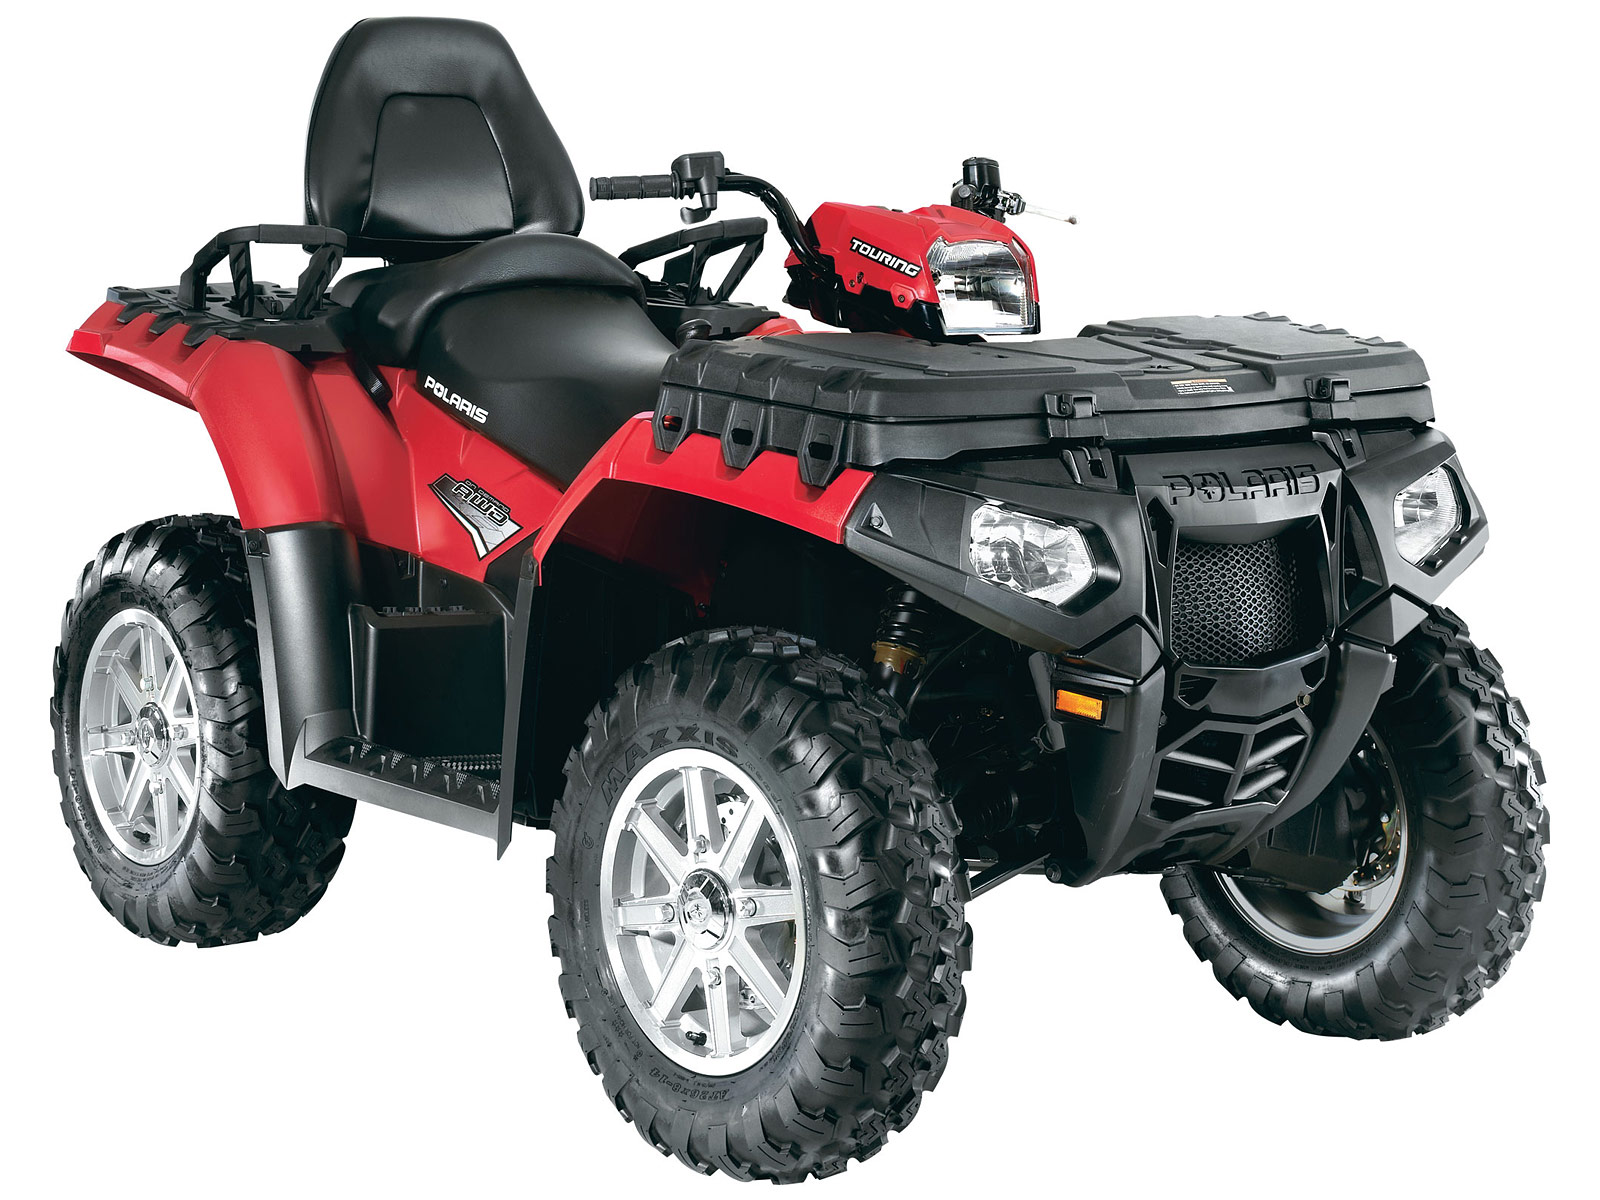 2012 polaris sportsman touring 850 ho eps. Black Bedroom Furniture Sets. Home Design Ideas